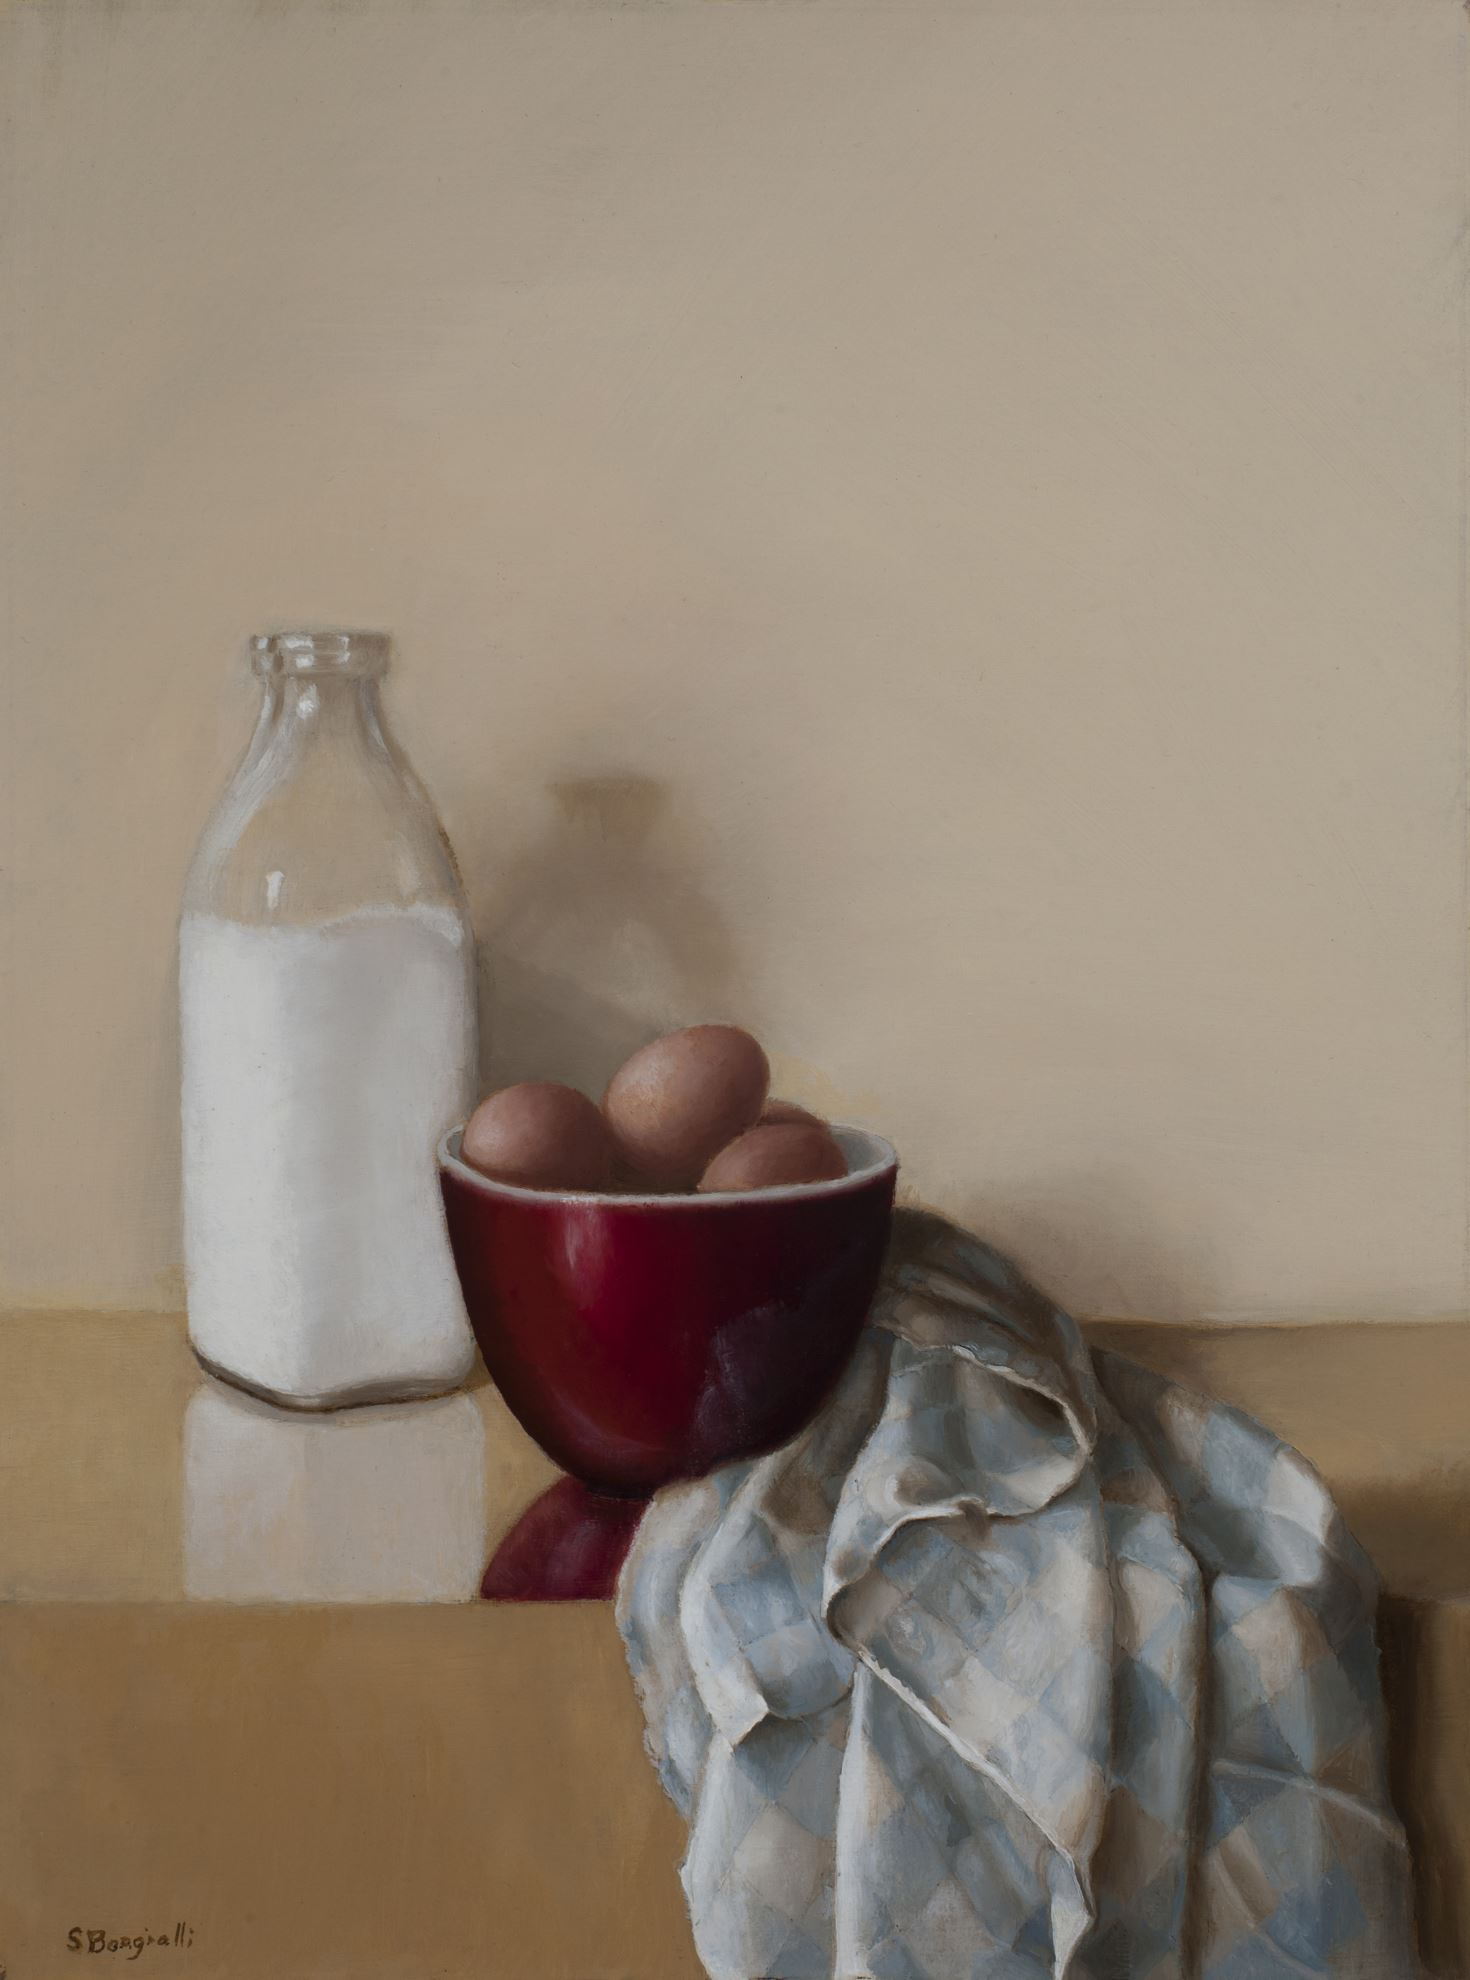 RED BOWL, 12 X 16